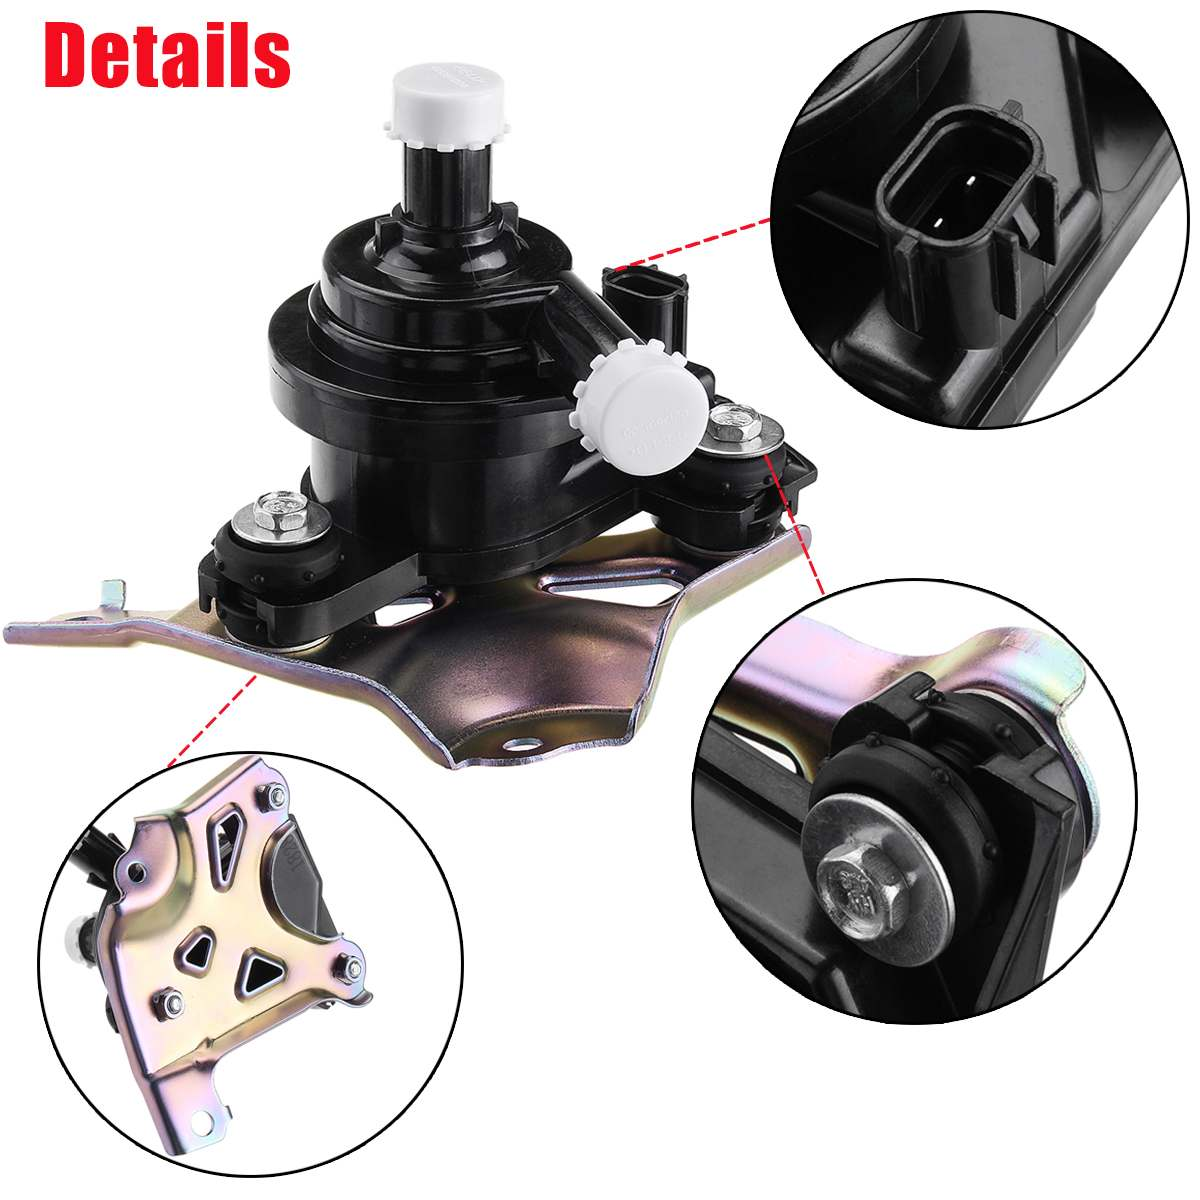 1PC 04000 32528 G902047031 Electric Inverter Water Pump For Toyota Prius 2004 2005 2006 2007 2008 2009-in Fuel Pumps from Automobiles & Motorcycles    2